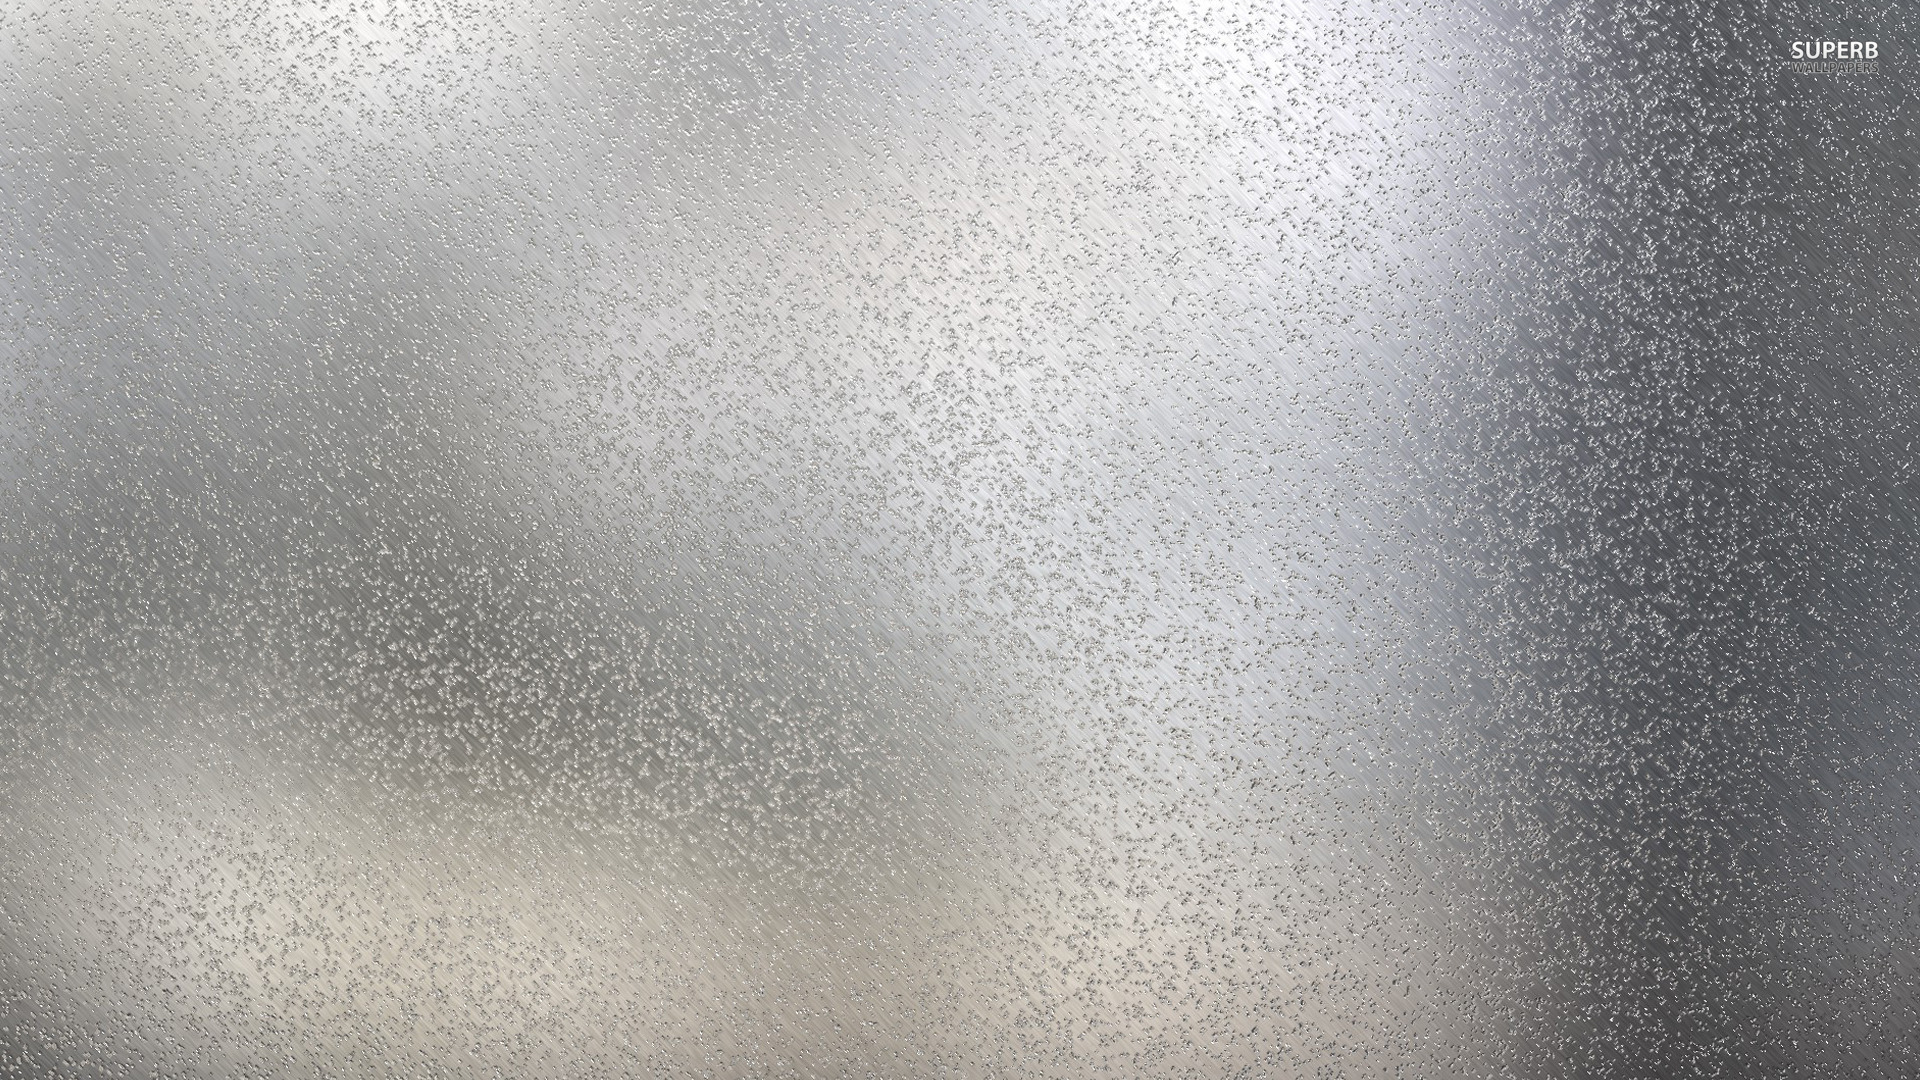 Wet glass wallpaper 1920x1080 jpg